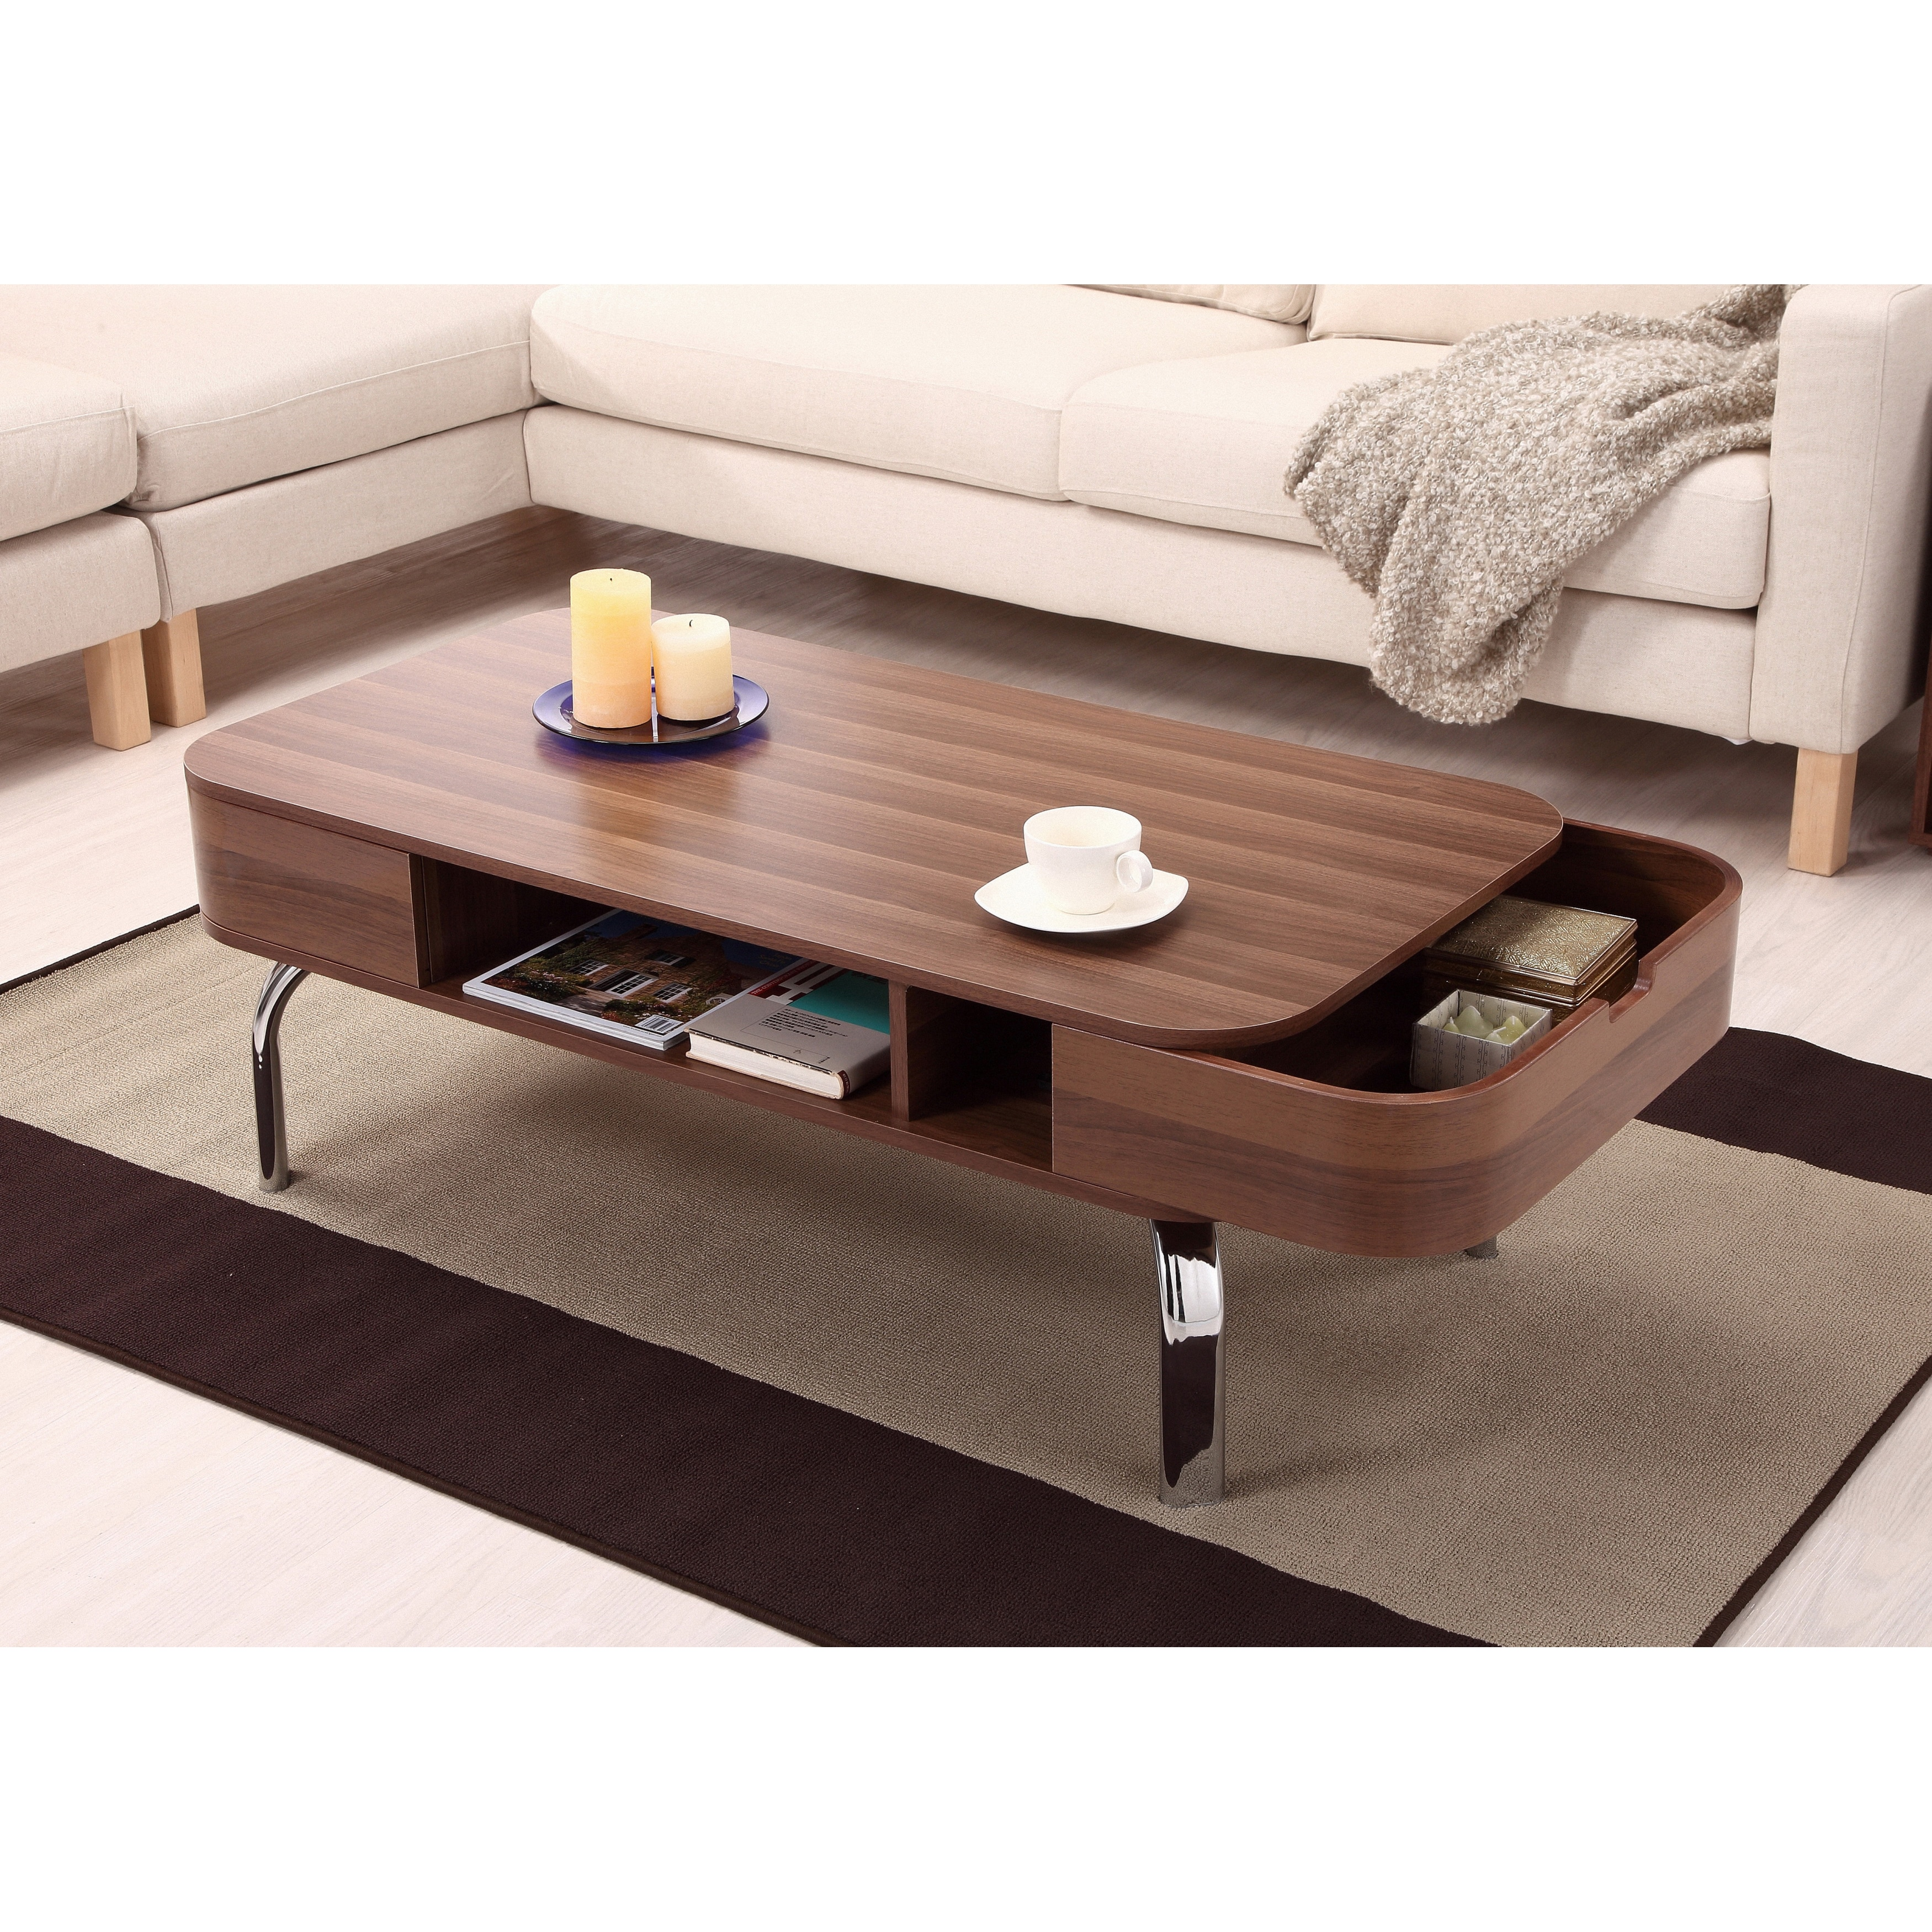 Modern Brown Walnut Wood Coffee Table With Storage Side Drawers For Living Room